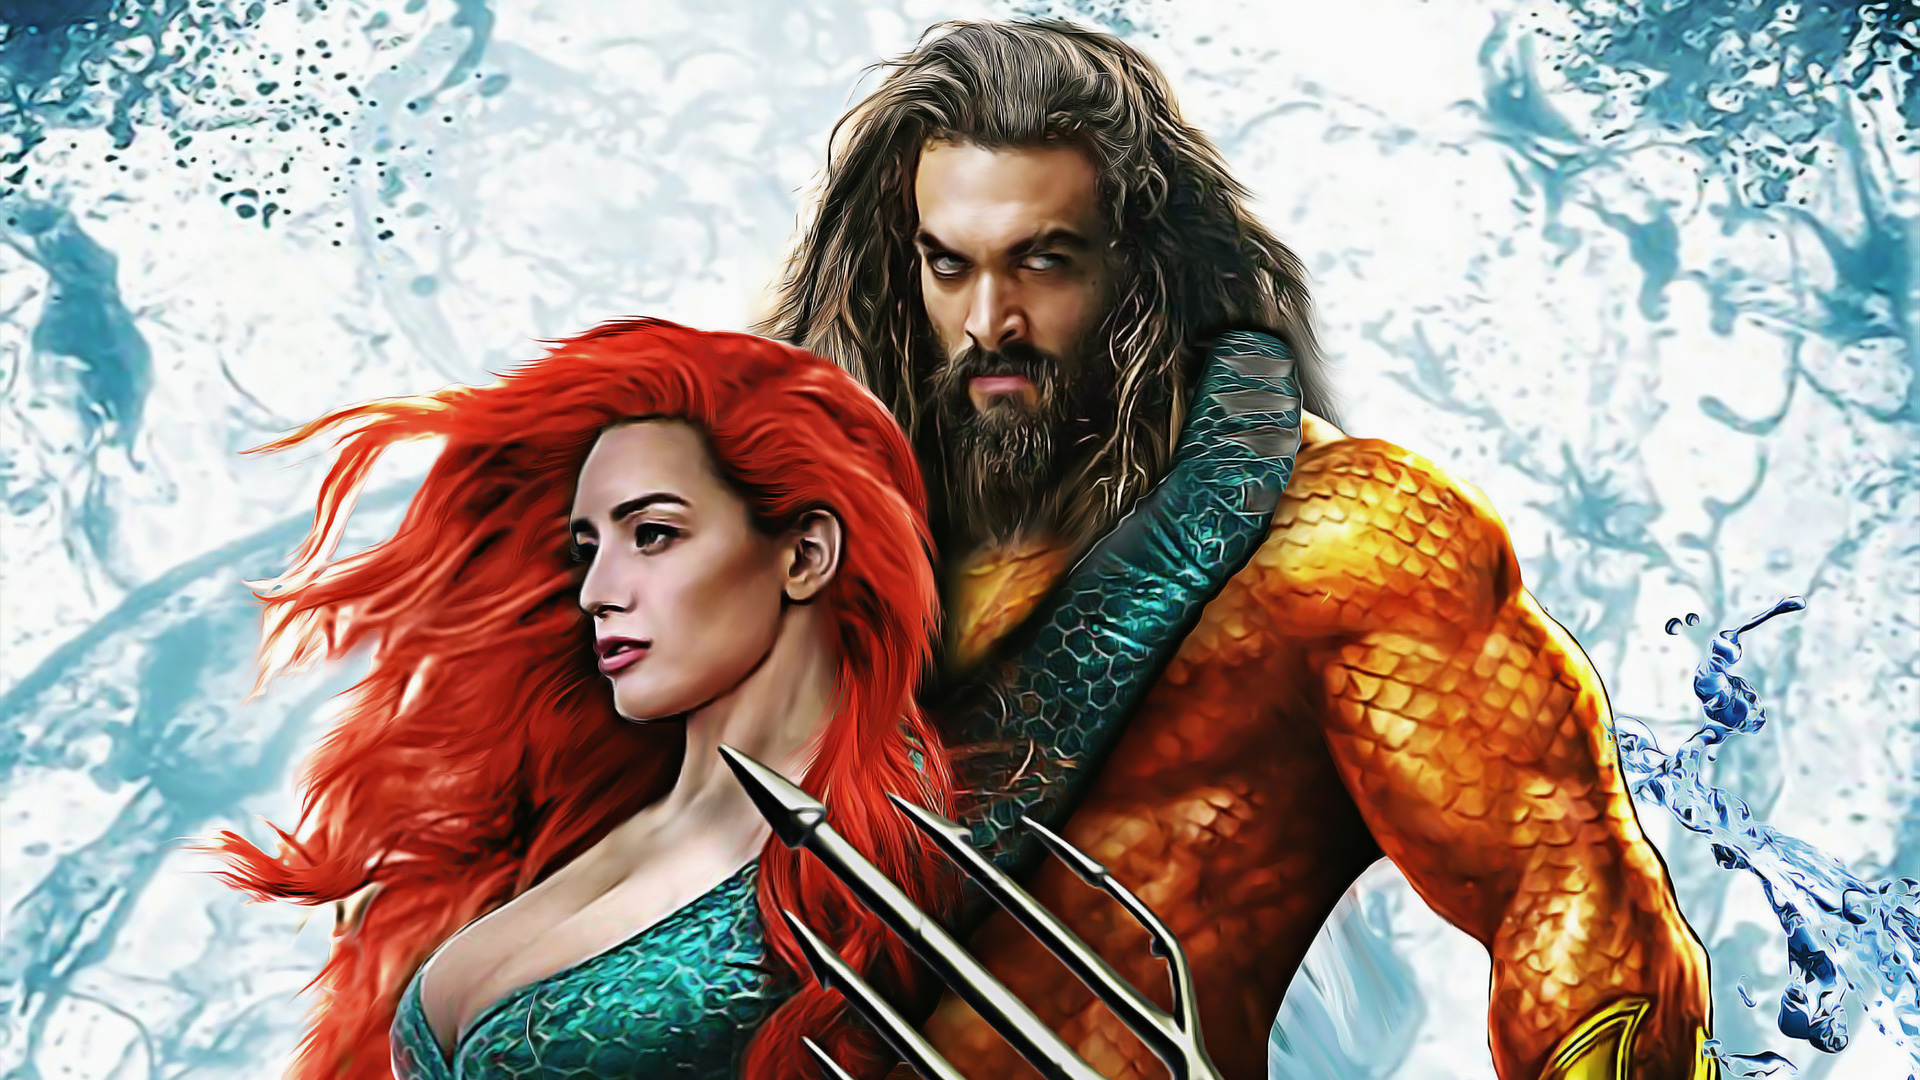 Aquaman And Mera Art Hd Superheroes 4k Wallpapers Images